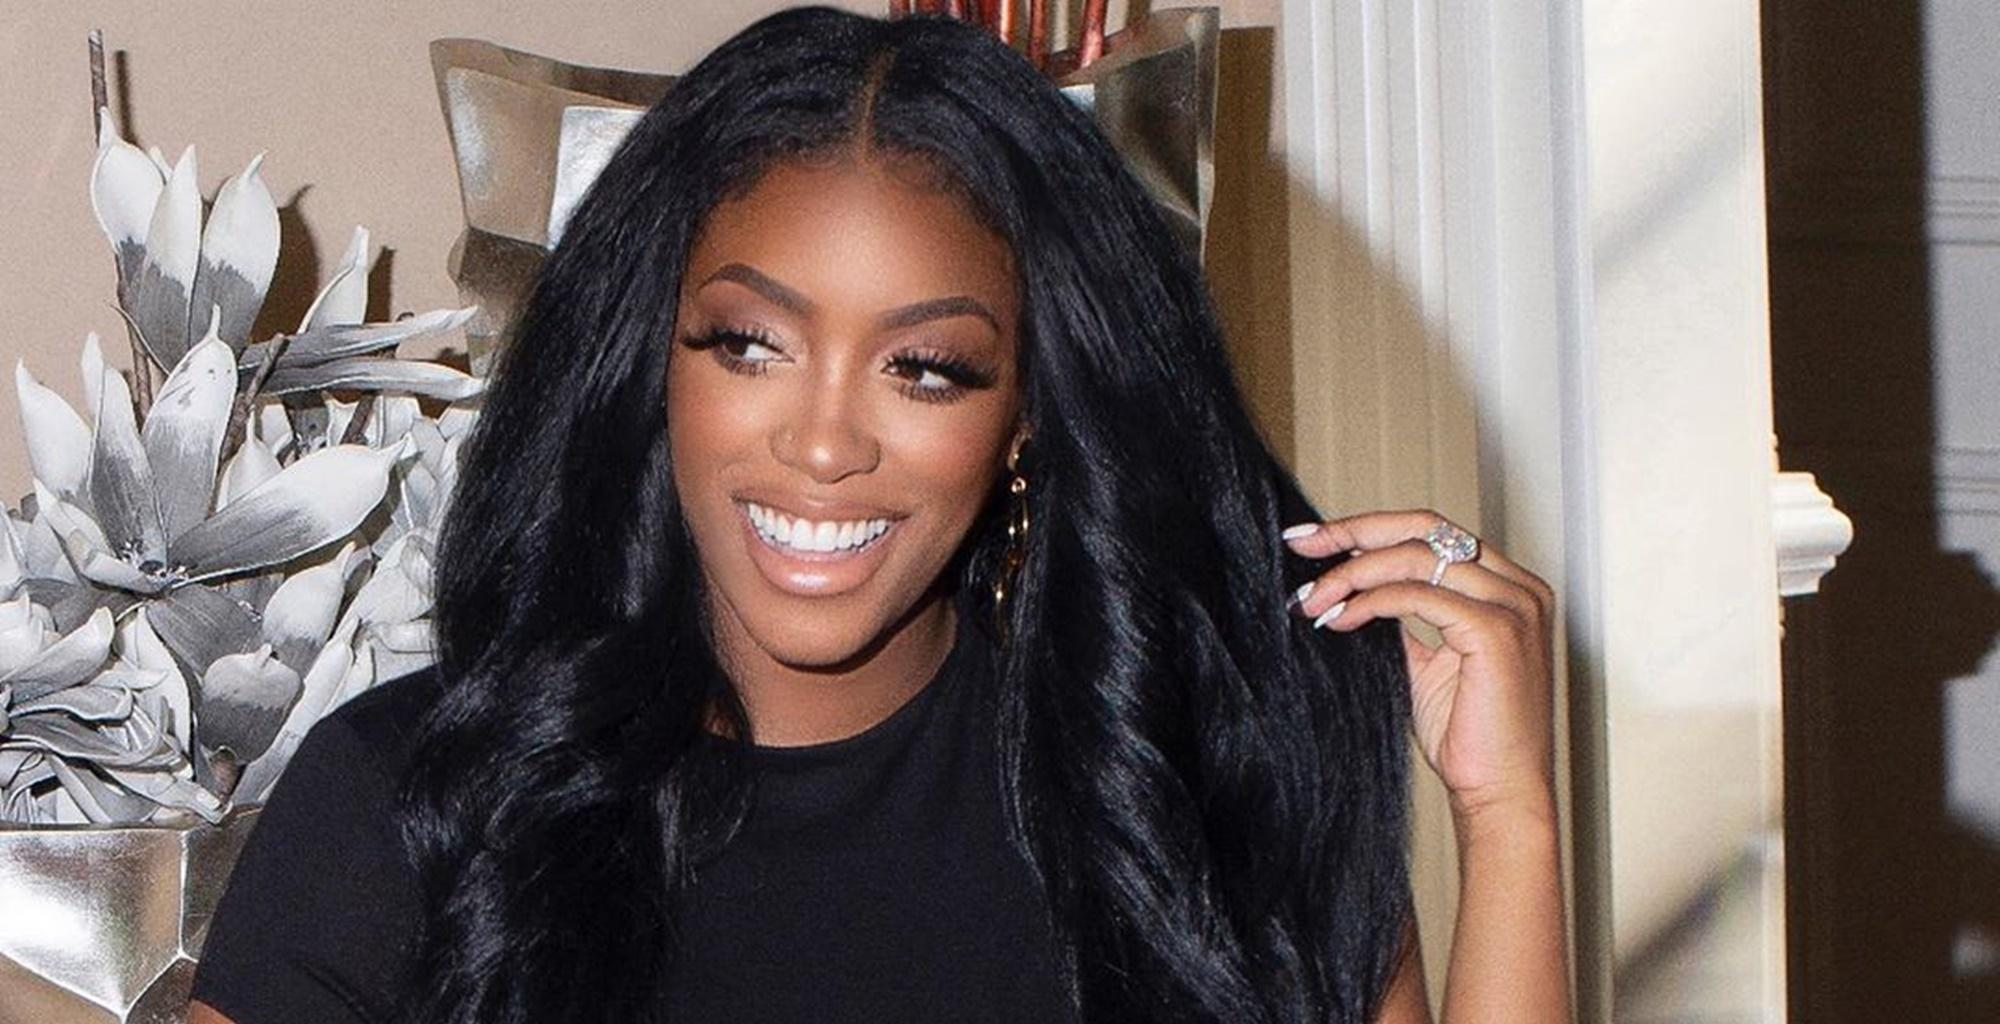 Porsha Williams Does Not Mind Working With NeNe Leakes As Some 'RHOA' Fans Hope She Will Land A Spin-Off After The Success Of 'Porsha's Having A Baby'